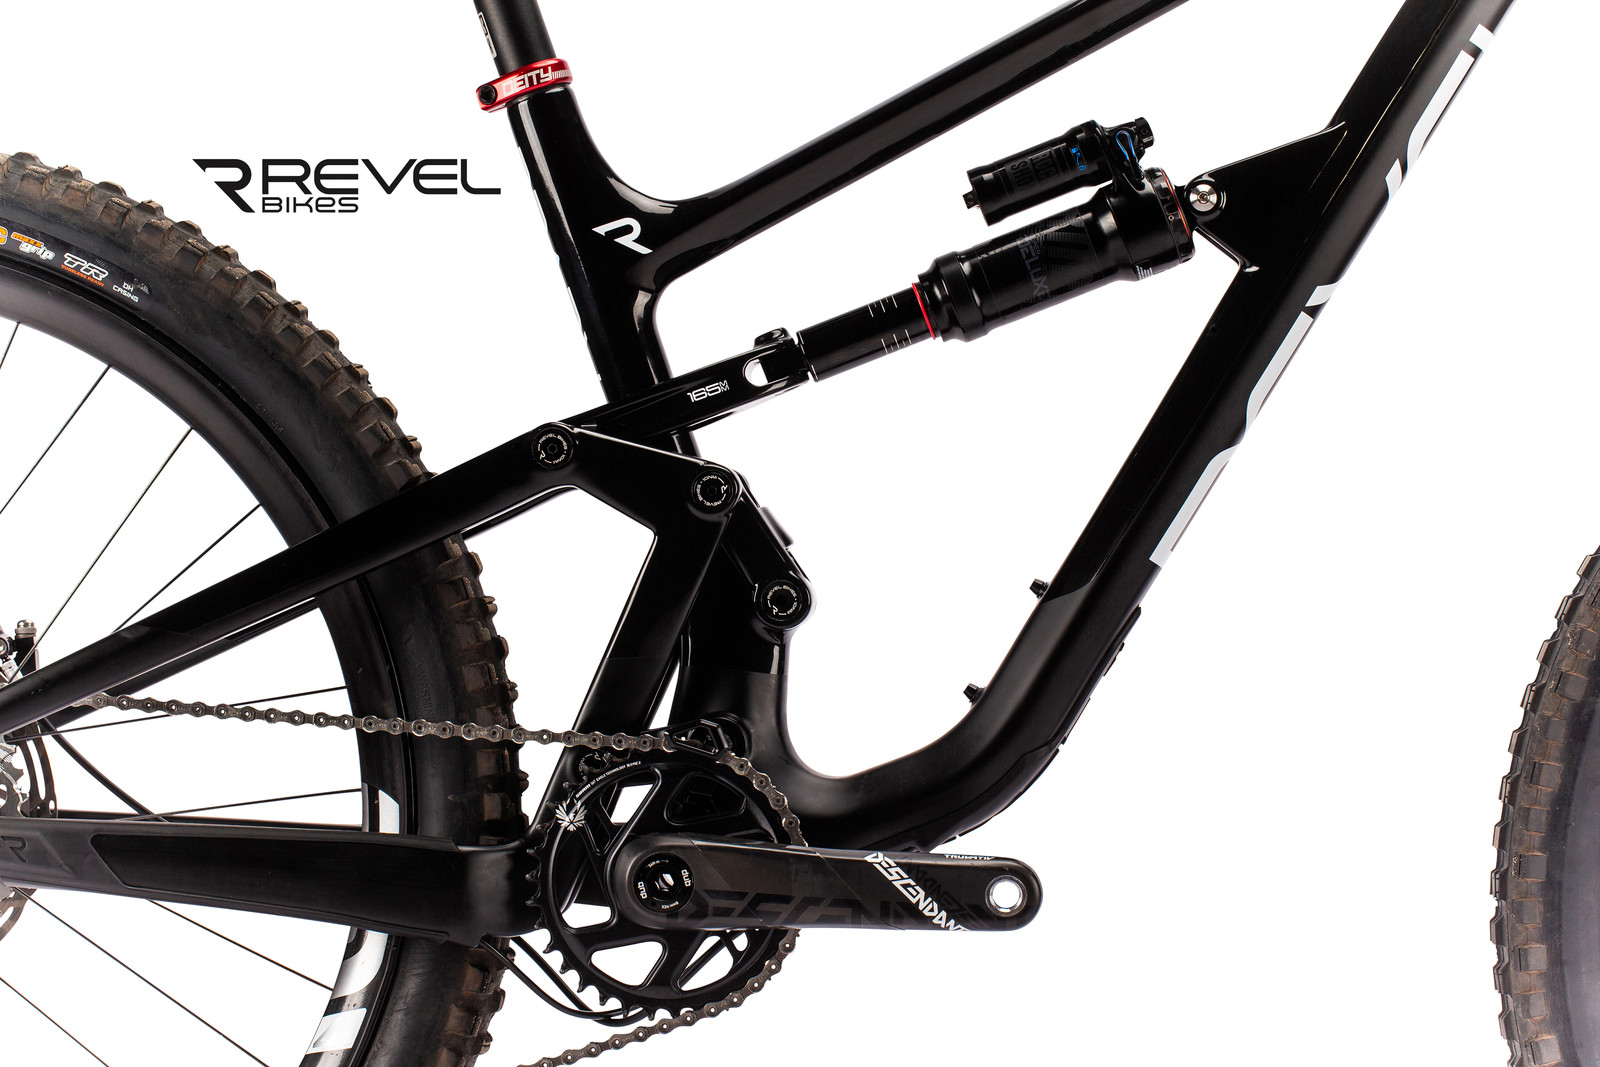 Introducing Revel Bikes